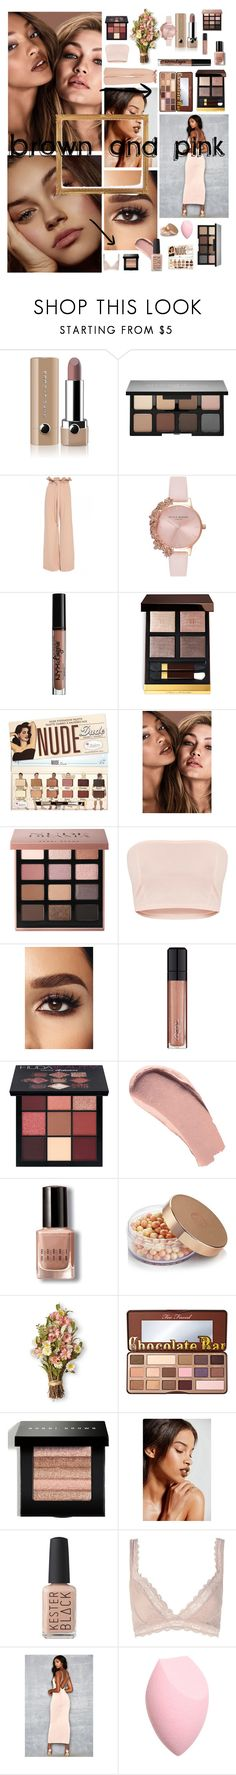 """Brown and pink"" by modafashiononline ❤ liked on Polyvore featuring beauty, Marc Jacobs, Smashbox, Olivia Burton, Charlotte Russe, Bobbi Brown Cosmetics, L'Oréal Paris, Huda Beauty, Burberry and The Body Shop"